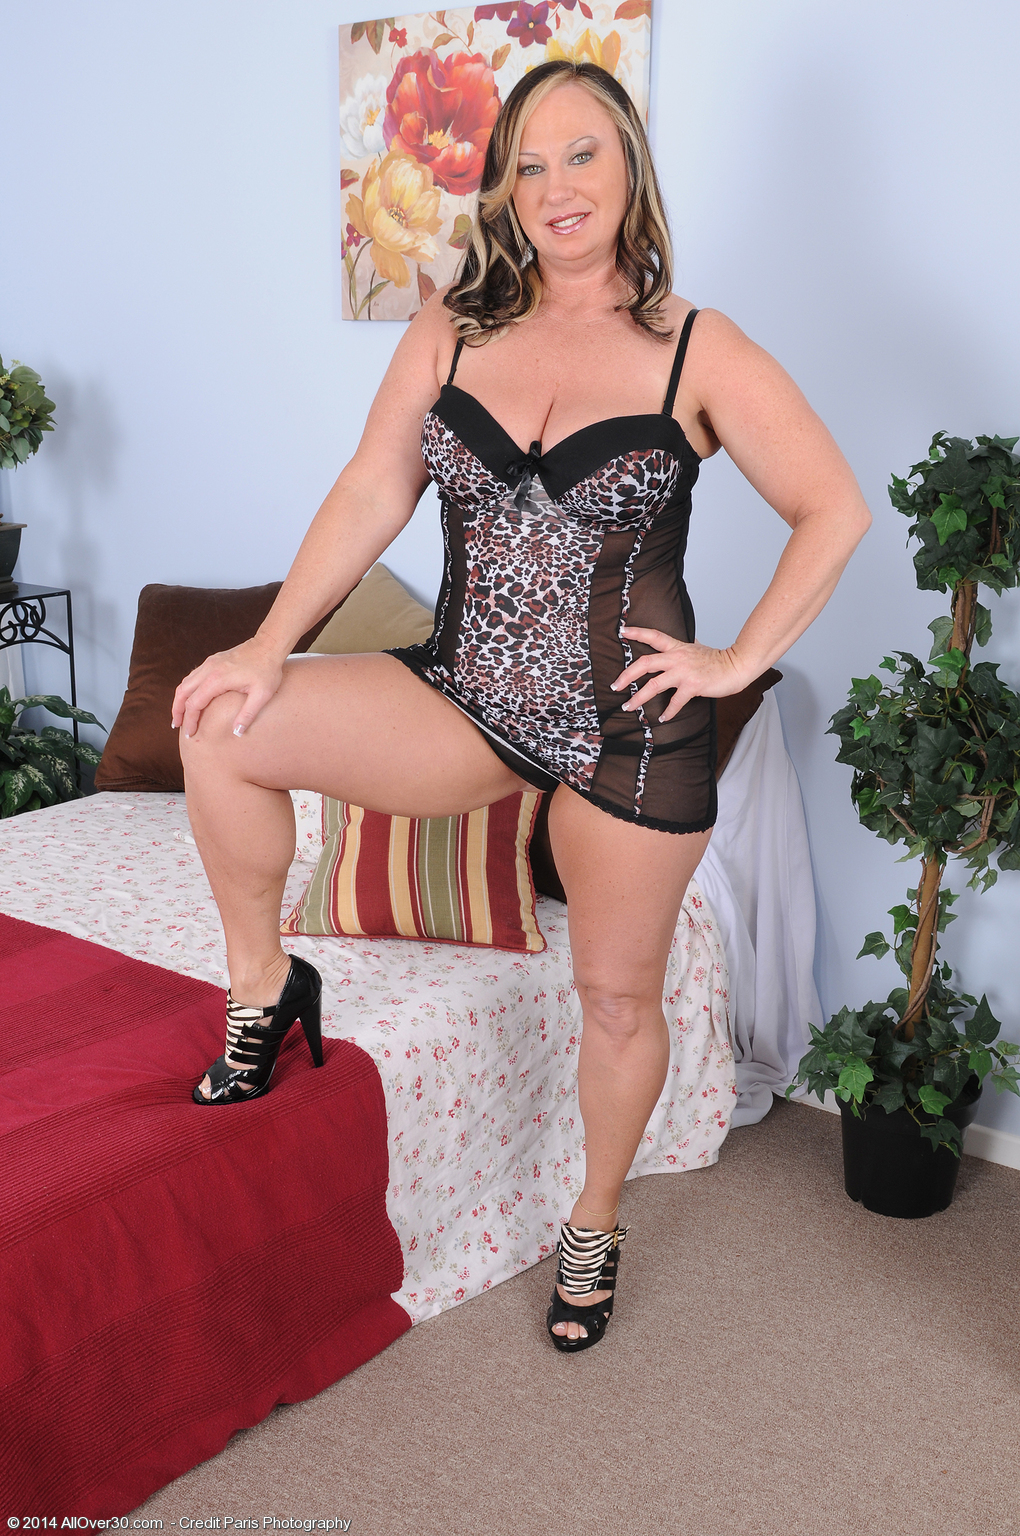 42 year old mary jane - exclusive milf pictures from allover30